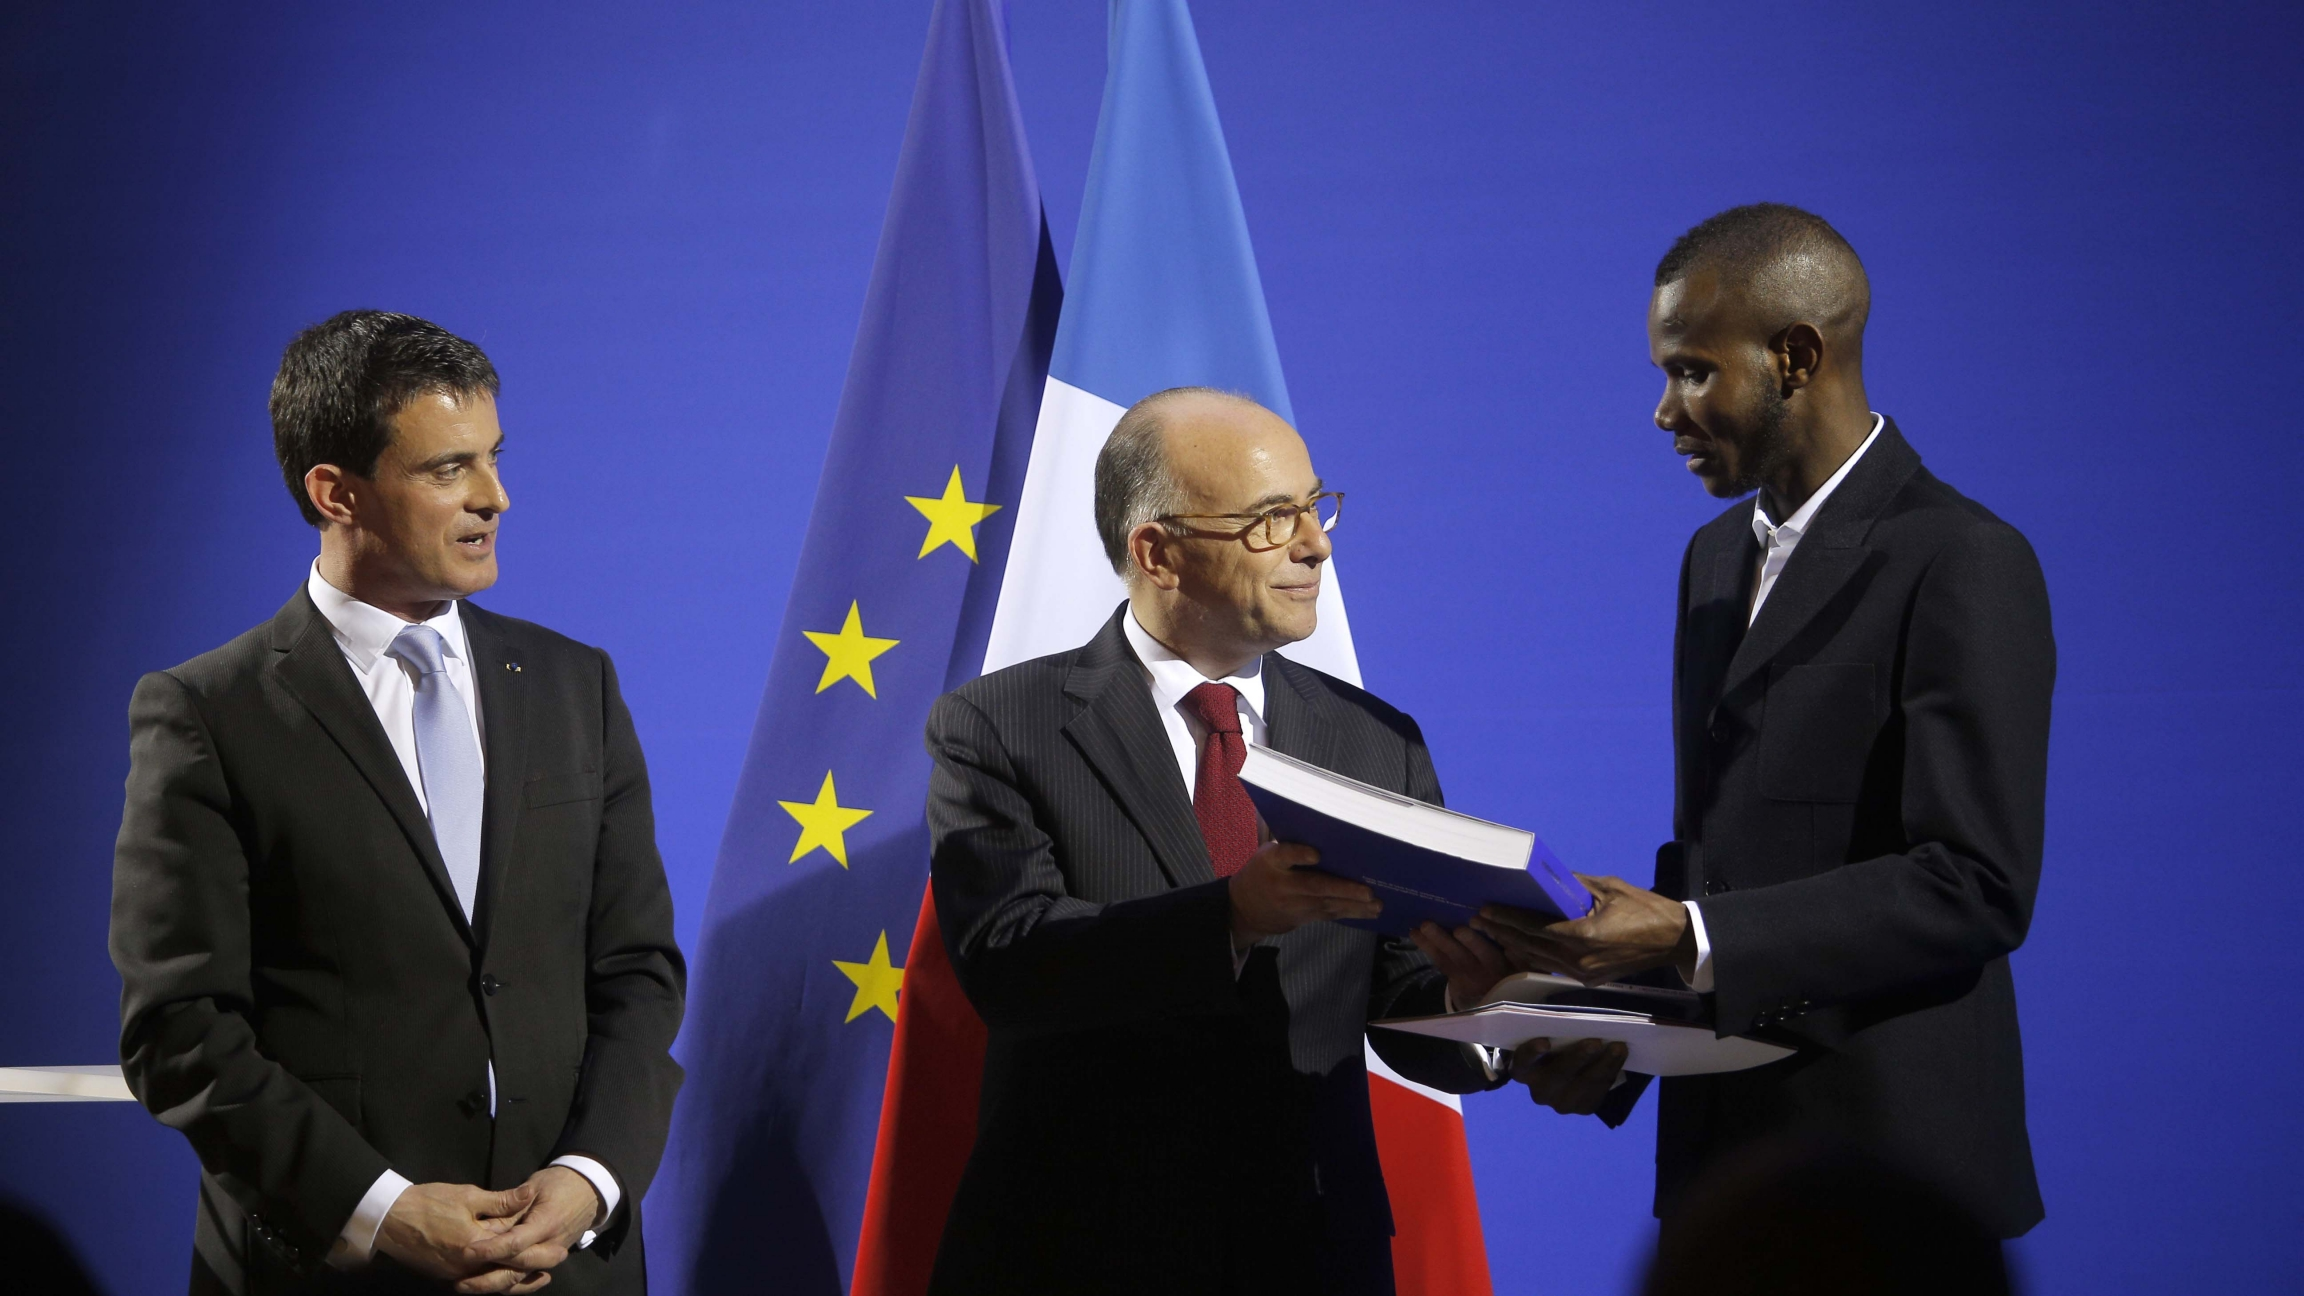 French Prime Minister Manuel Valls, left, and French Interior Minister Bernard Cazeneuve, center, award citizenship to Lassana Bathily during a ceremony in Paris, Jan. 20, 2015.